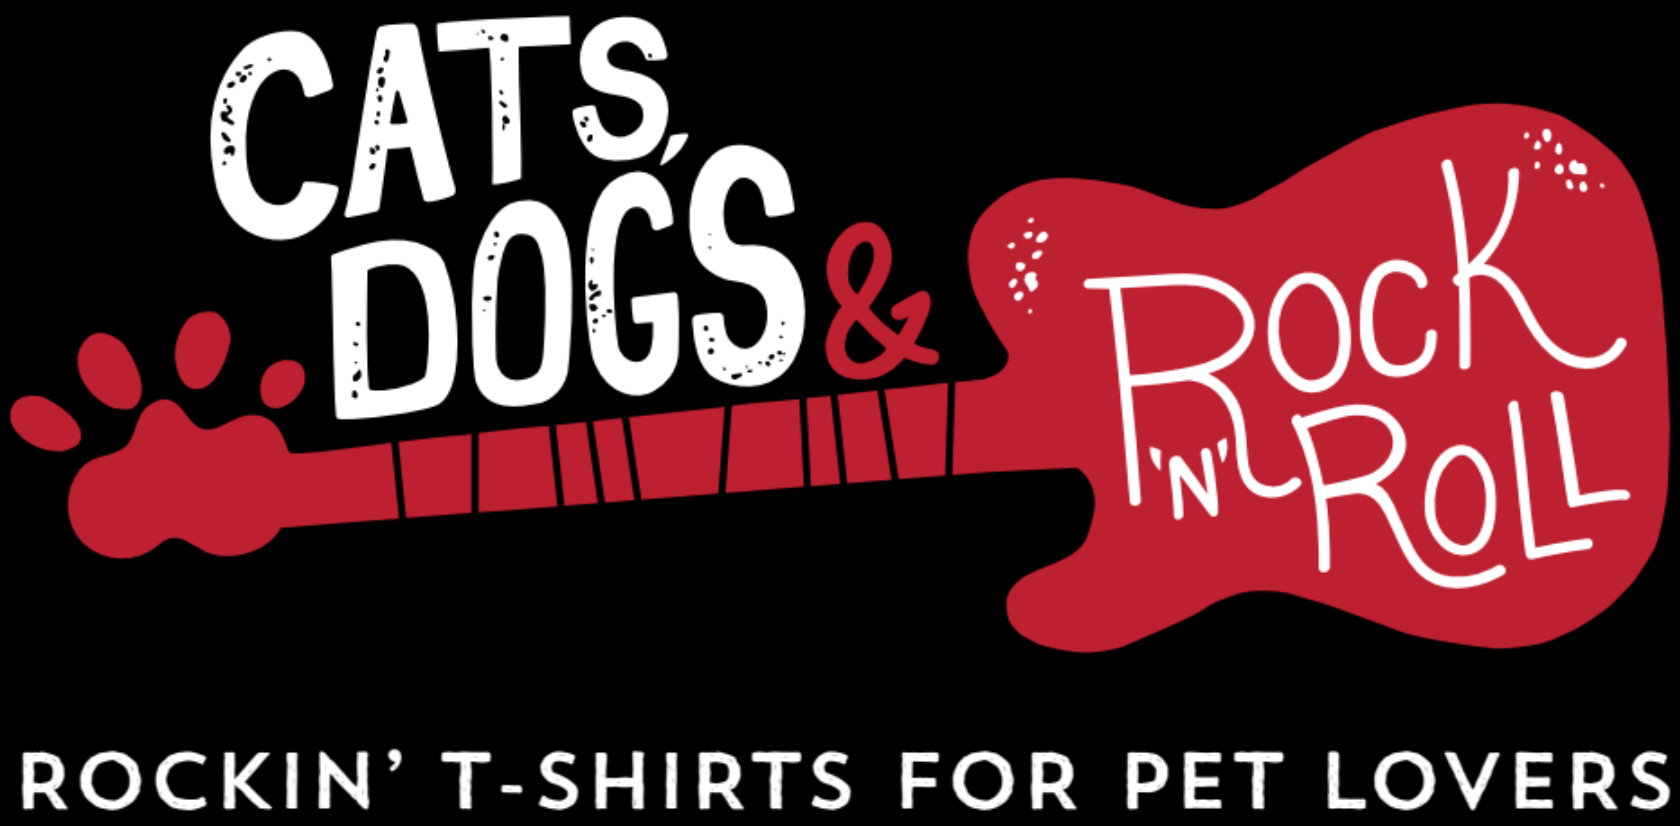 Cats, Dogs & Rock N Roll